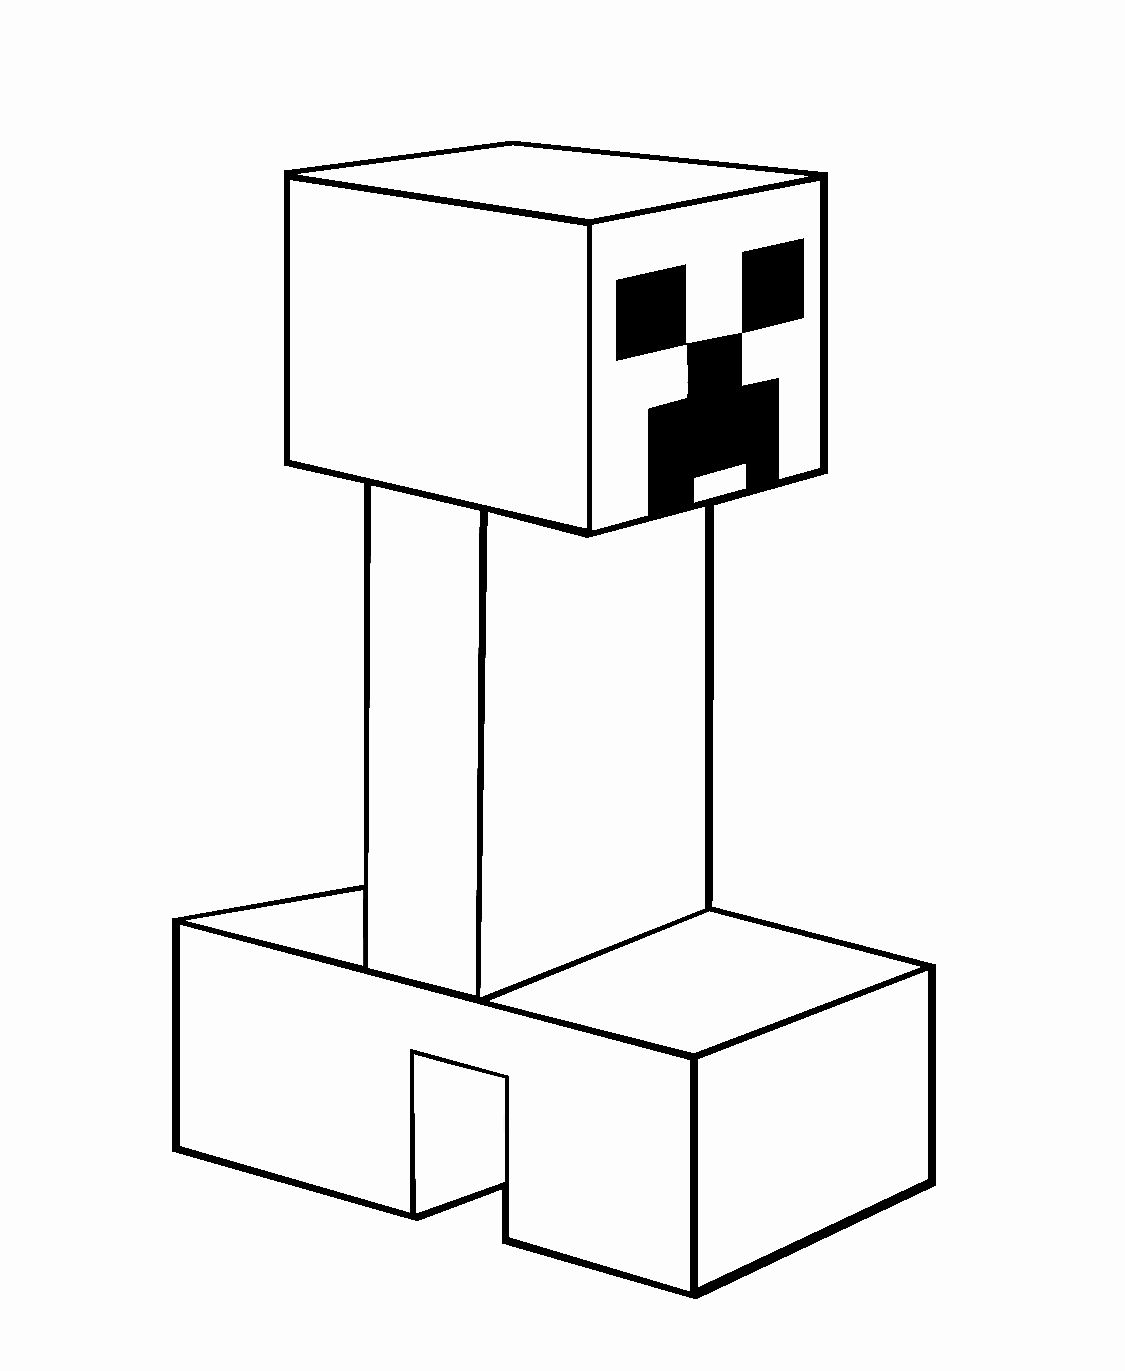 Minecraft Creeper Coloring Page Inspirational Minecraft Coloring Pages Minecraft Coloring Pages Cars Coloring Pages Coloring Pages